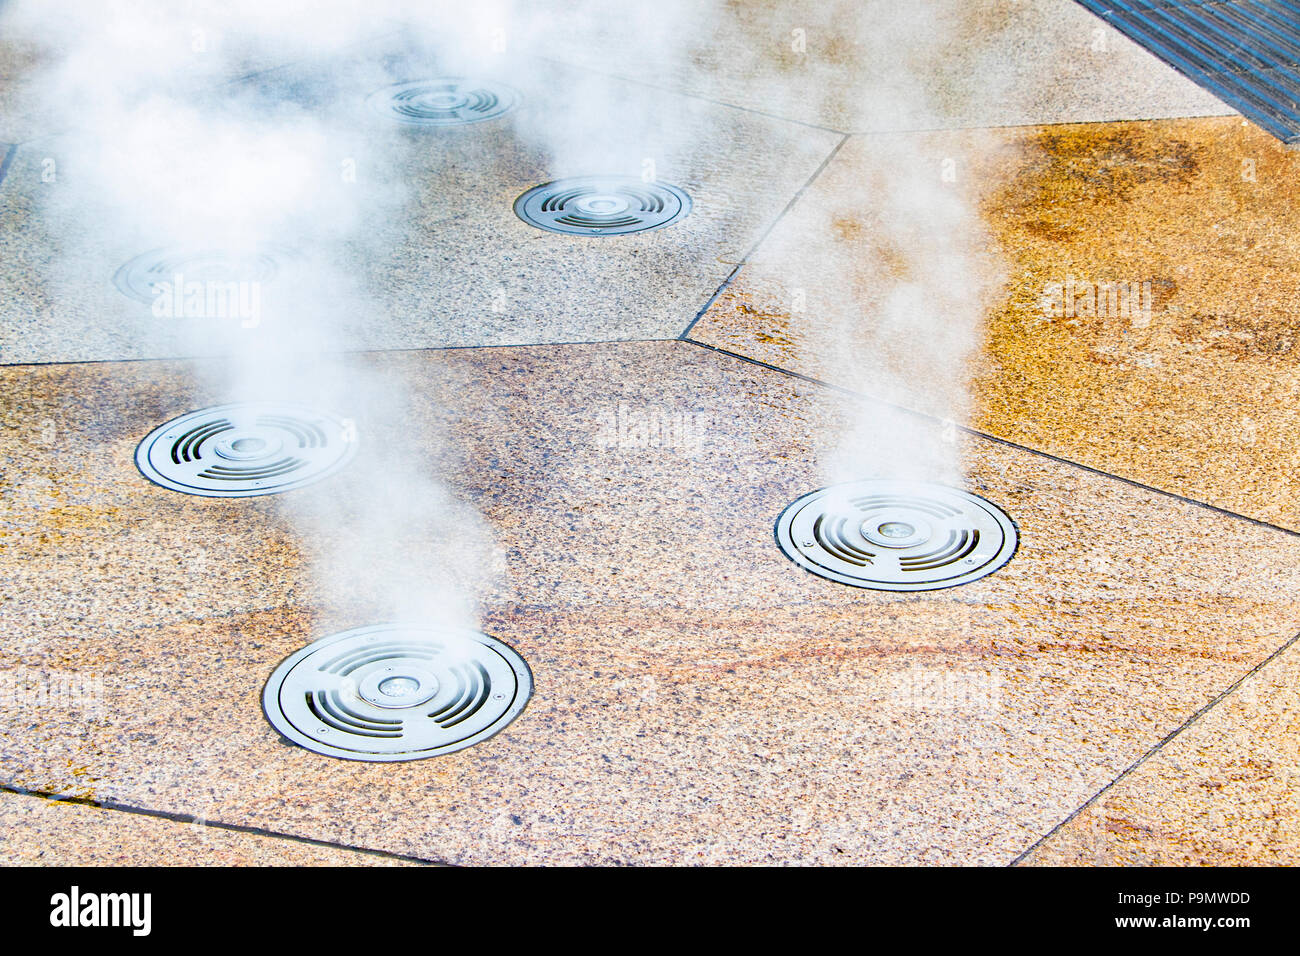 lighting with steam vents outside One Smithfield, Hanley, Stoke on trent - Stock Image